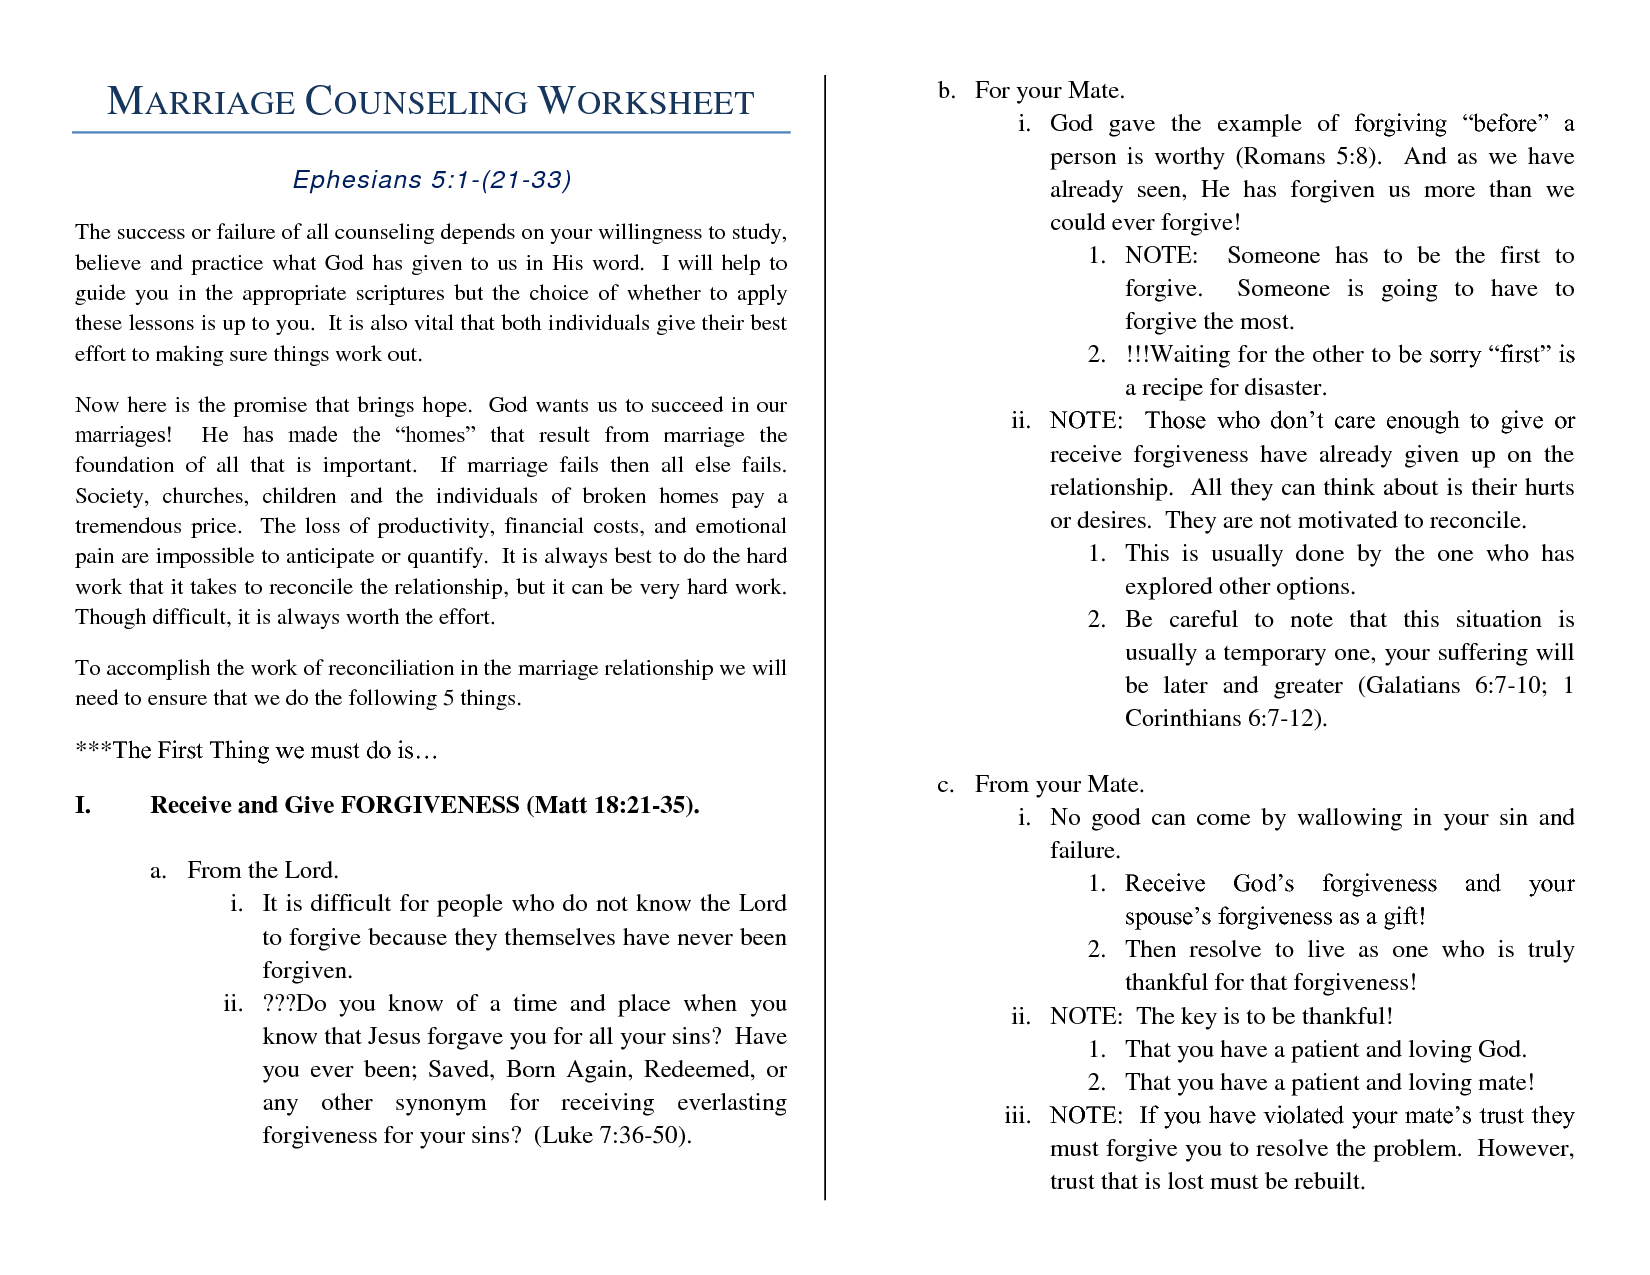 worksheet Forgiveness Worksheets 1000 images about marriage on pinterest anger quotes counseling and good marriage